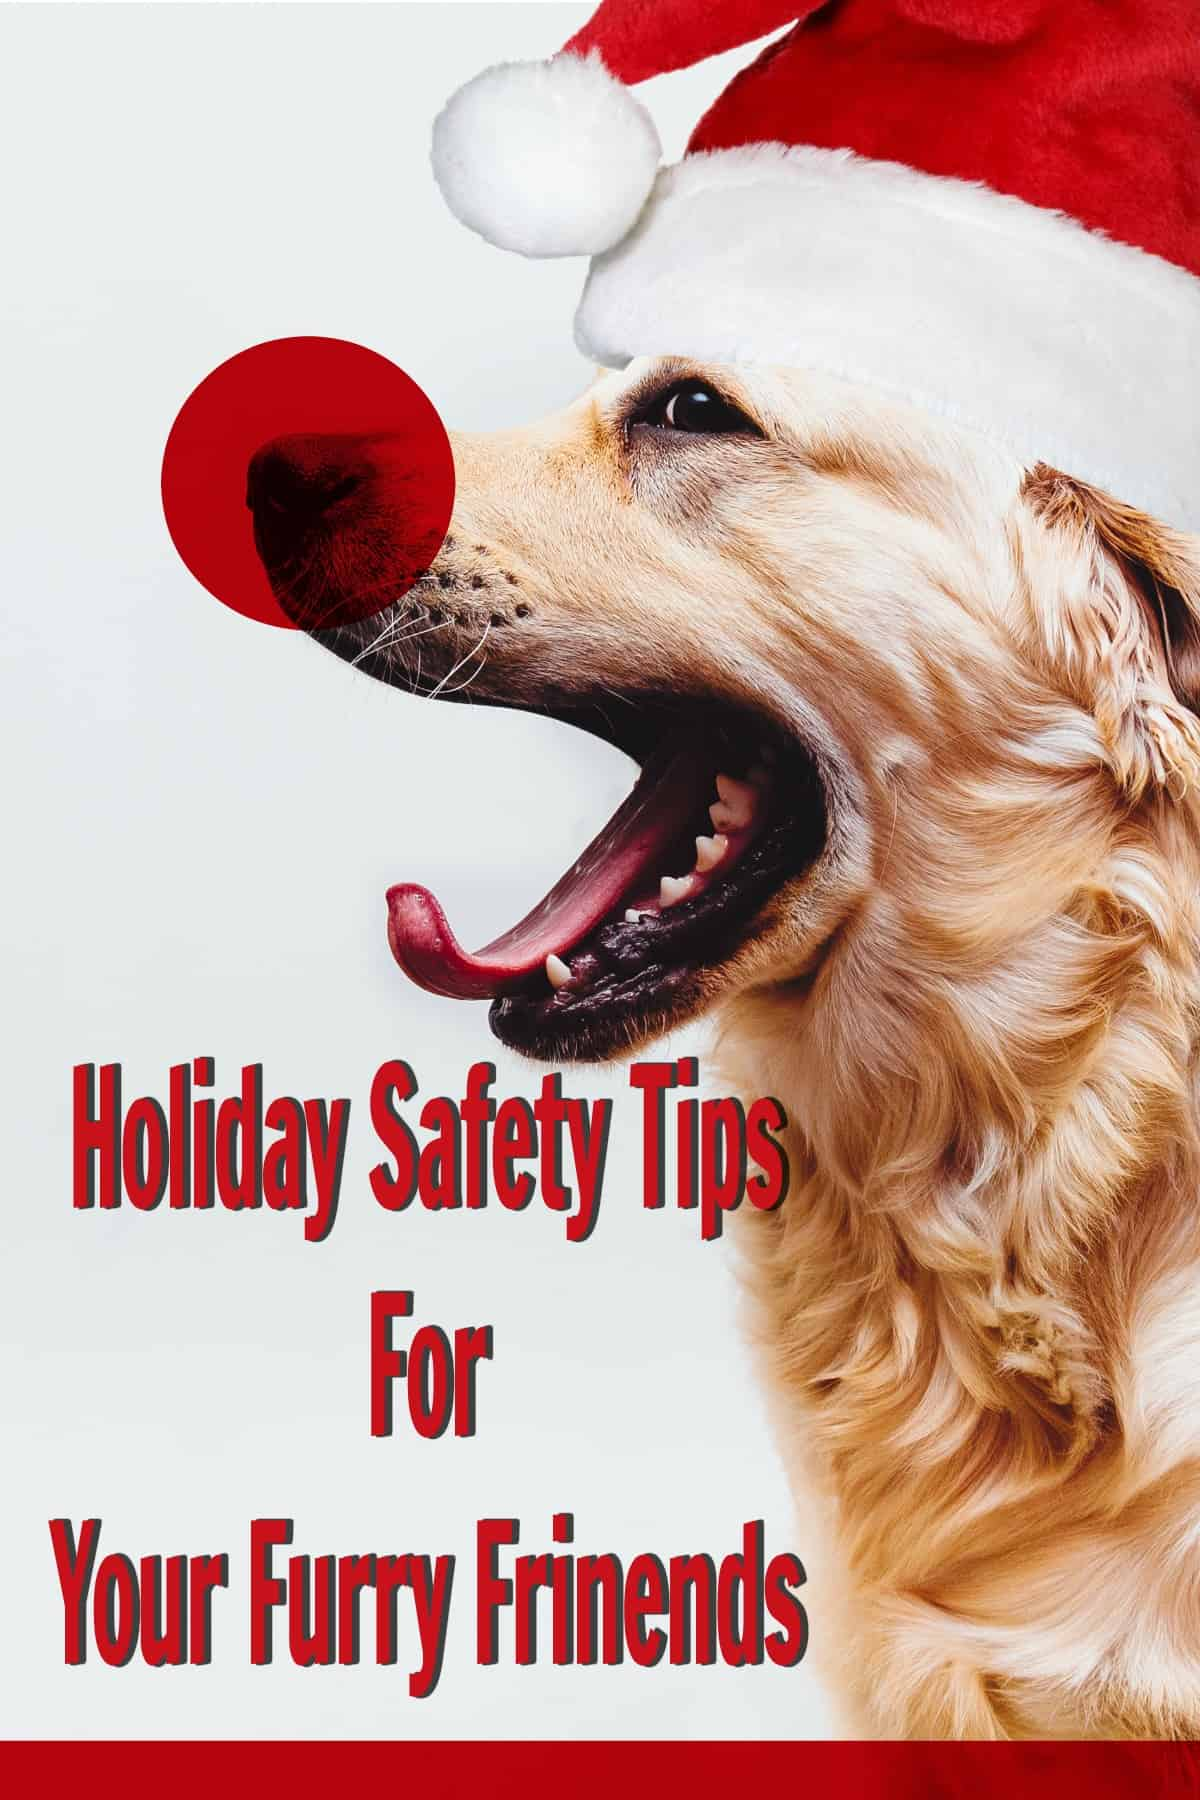 With a little planning holidays with pets can be safe and fun!